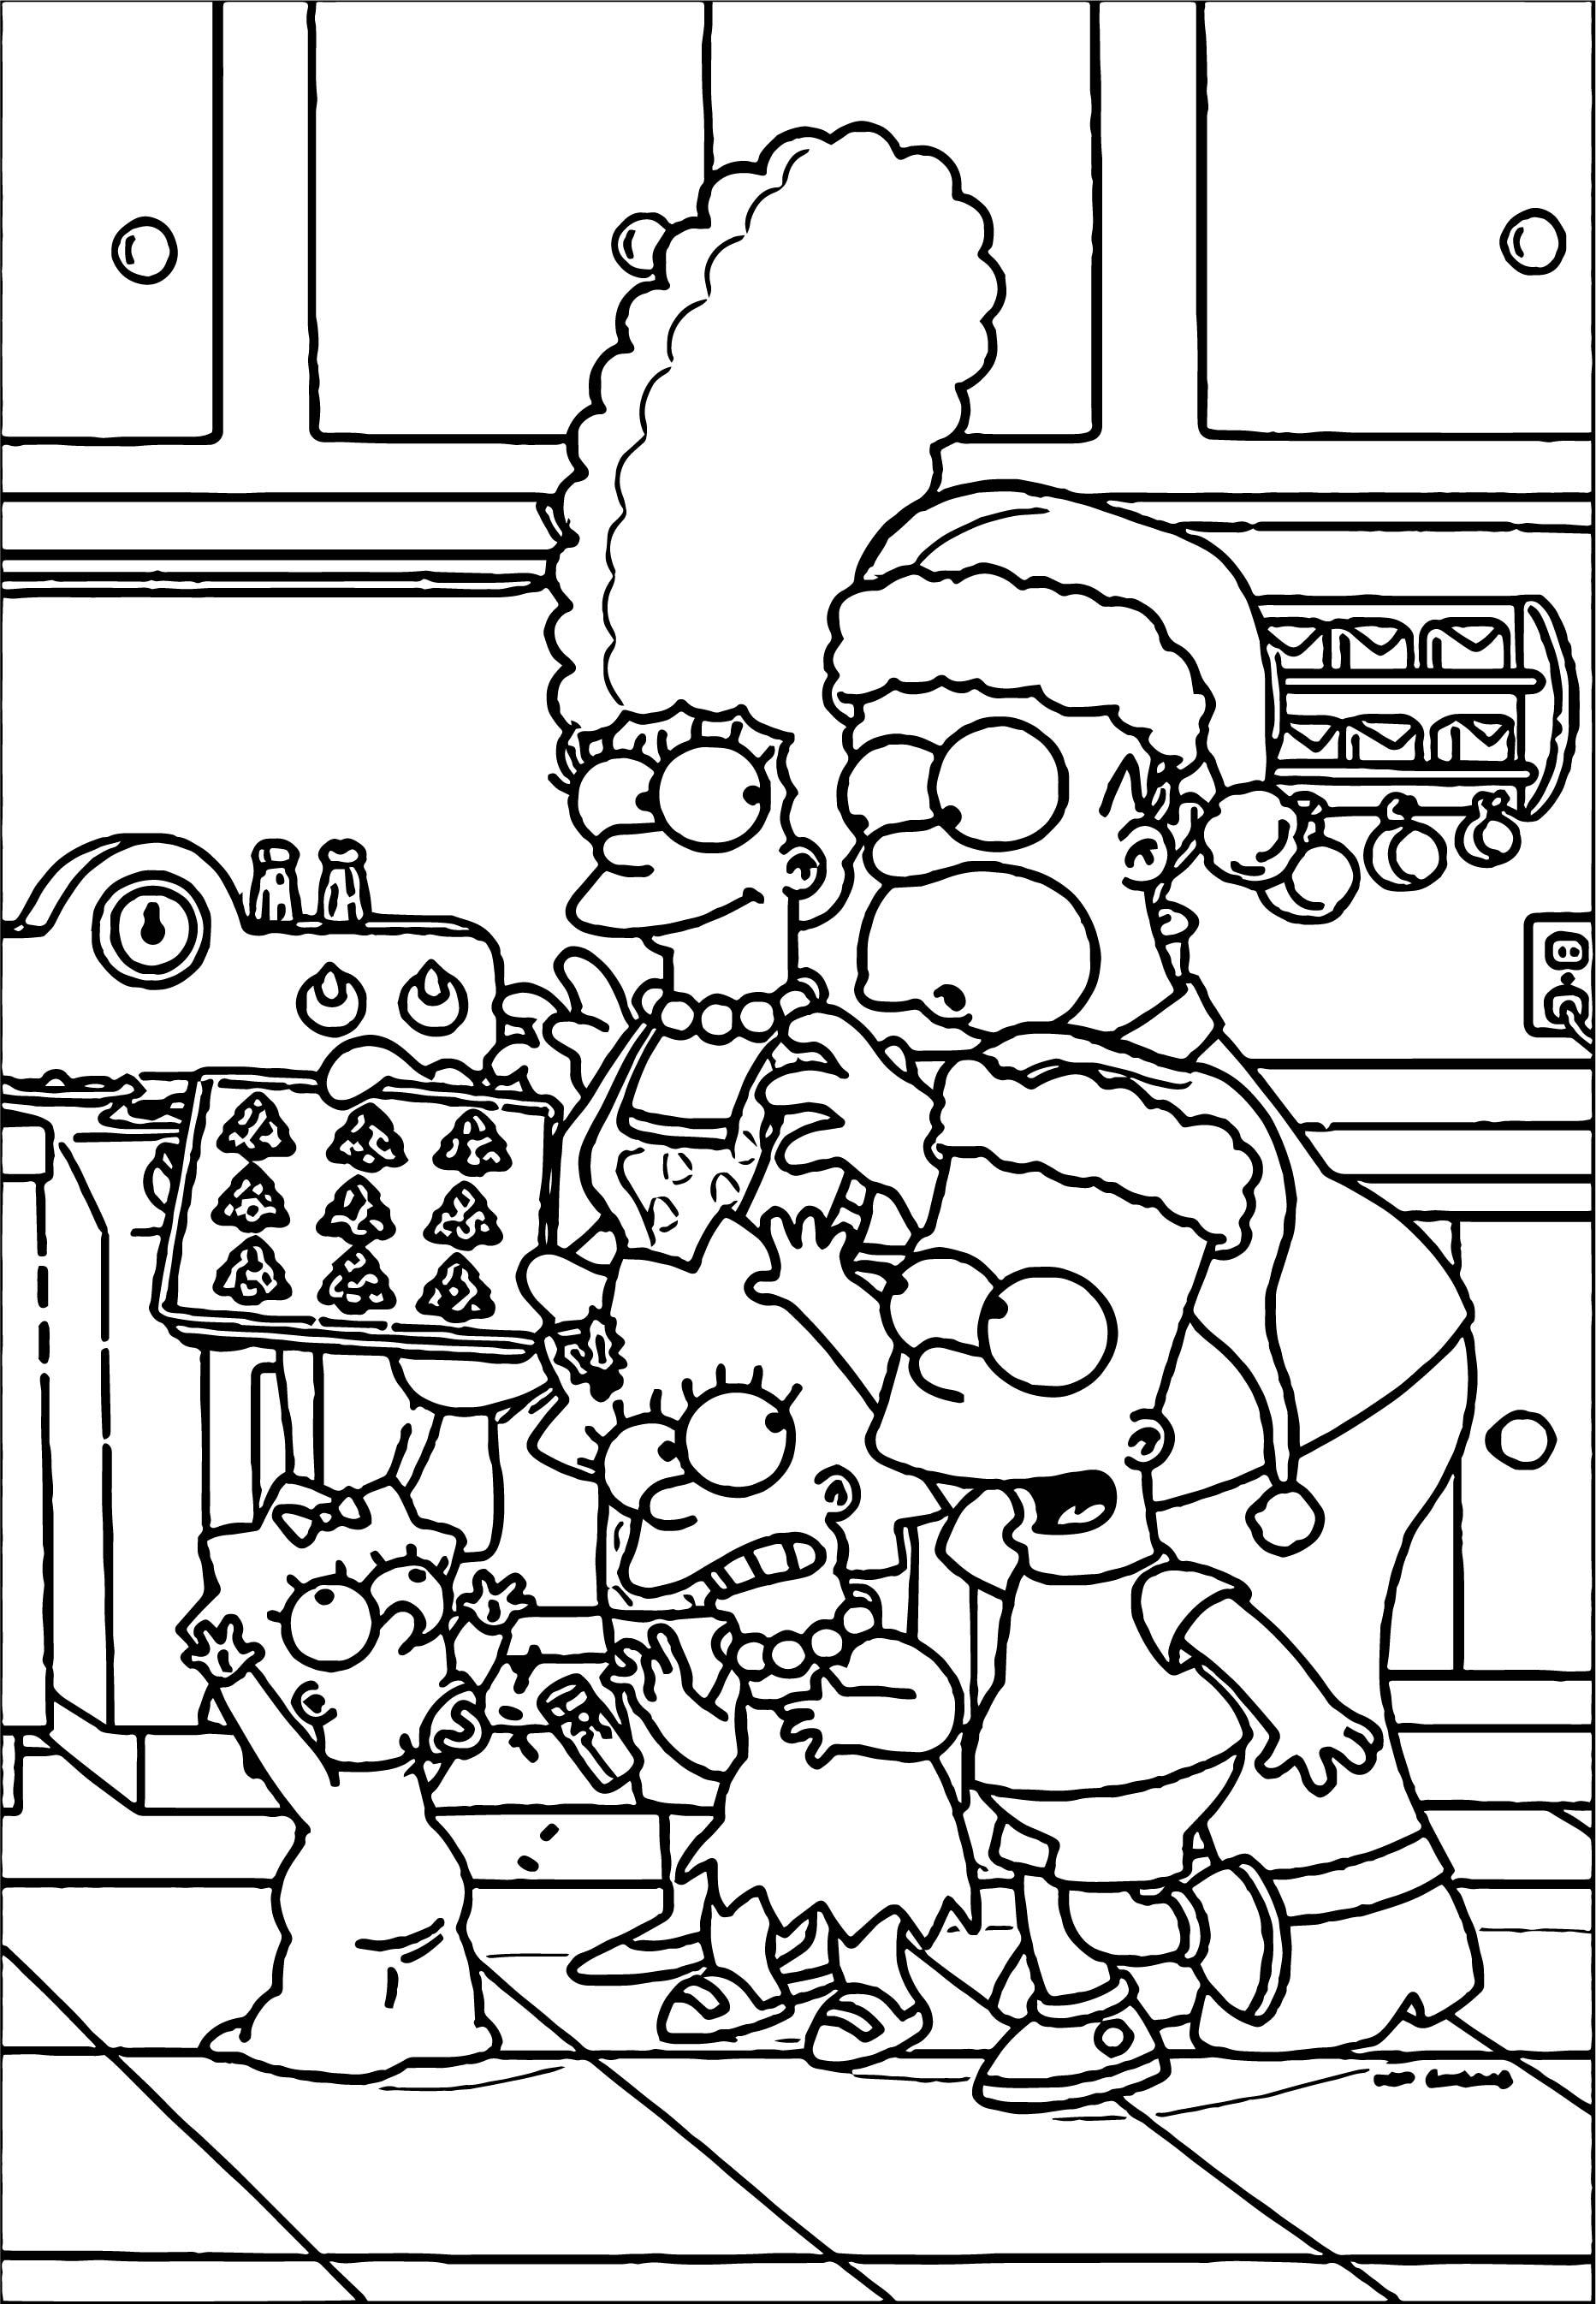 Simpsons Kitchen Coloring Page Wecoloringpage